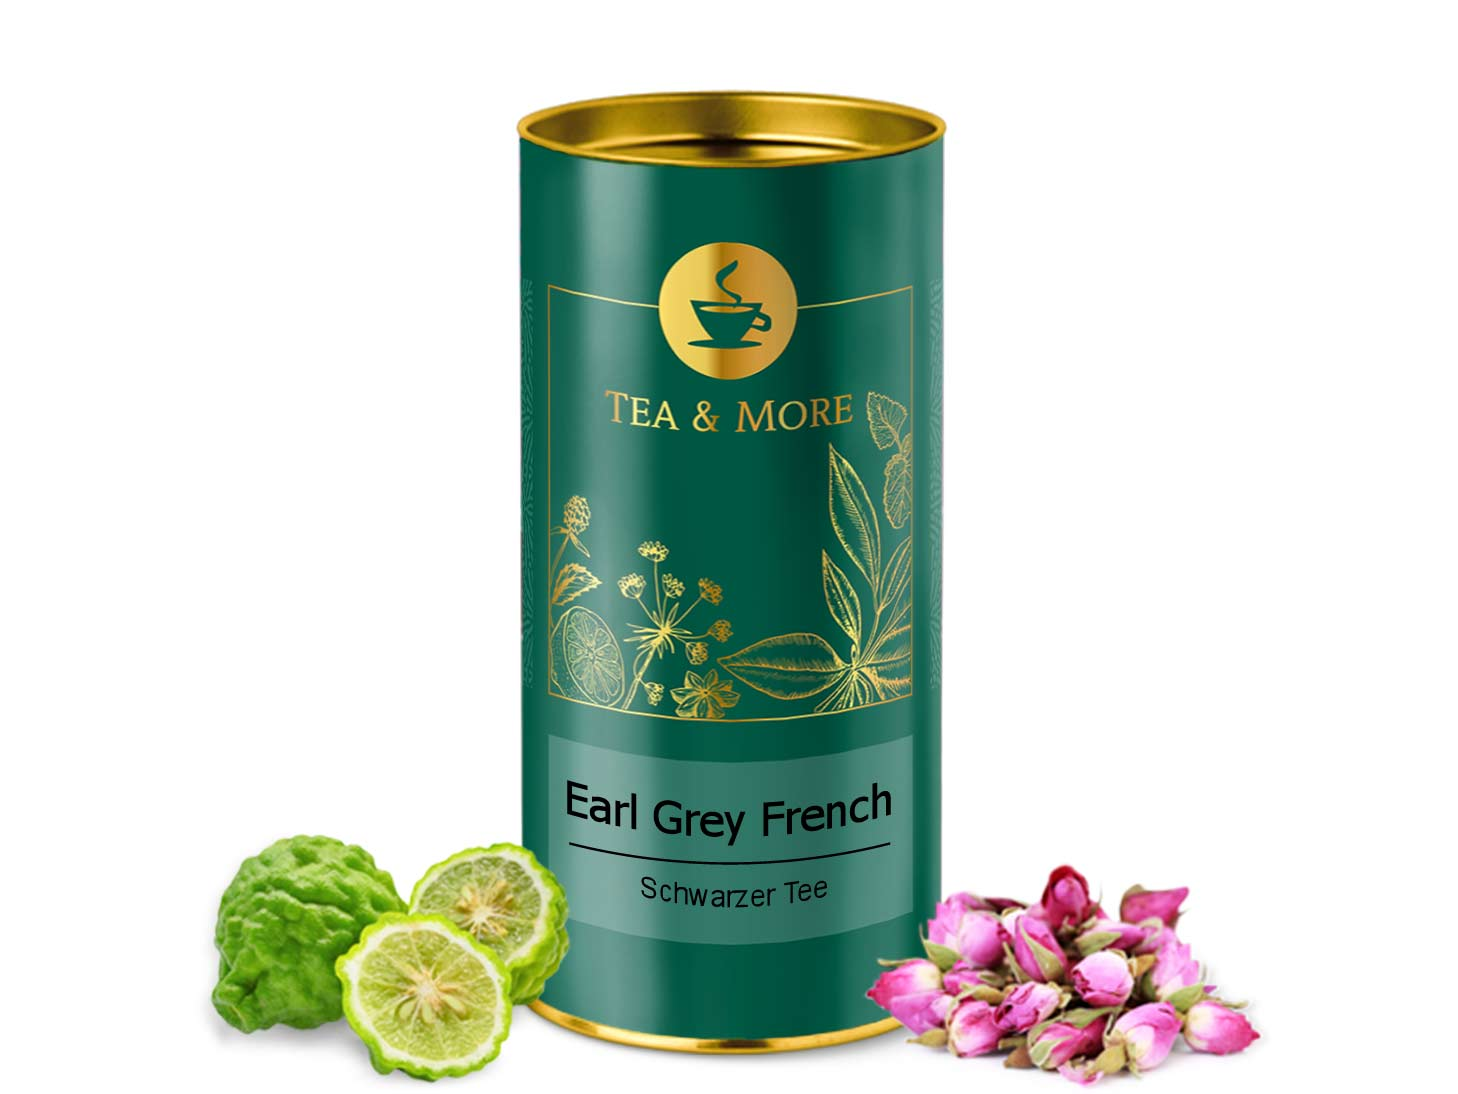 Earl Grey French